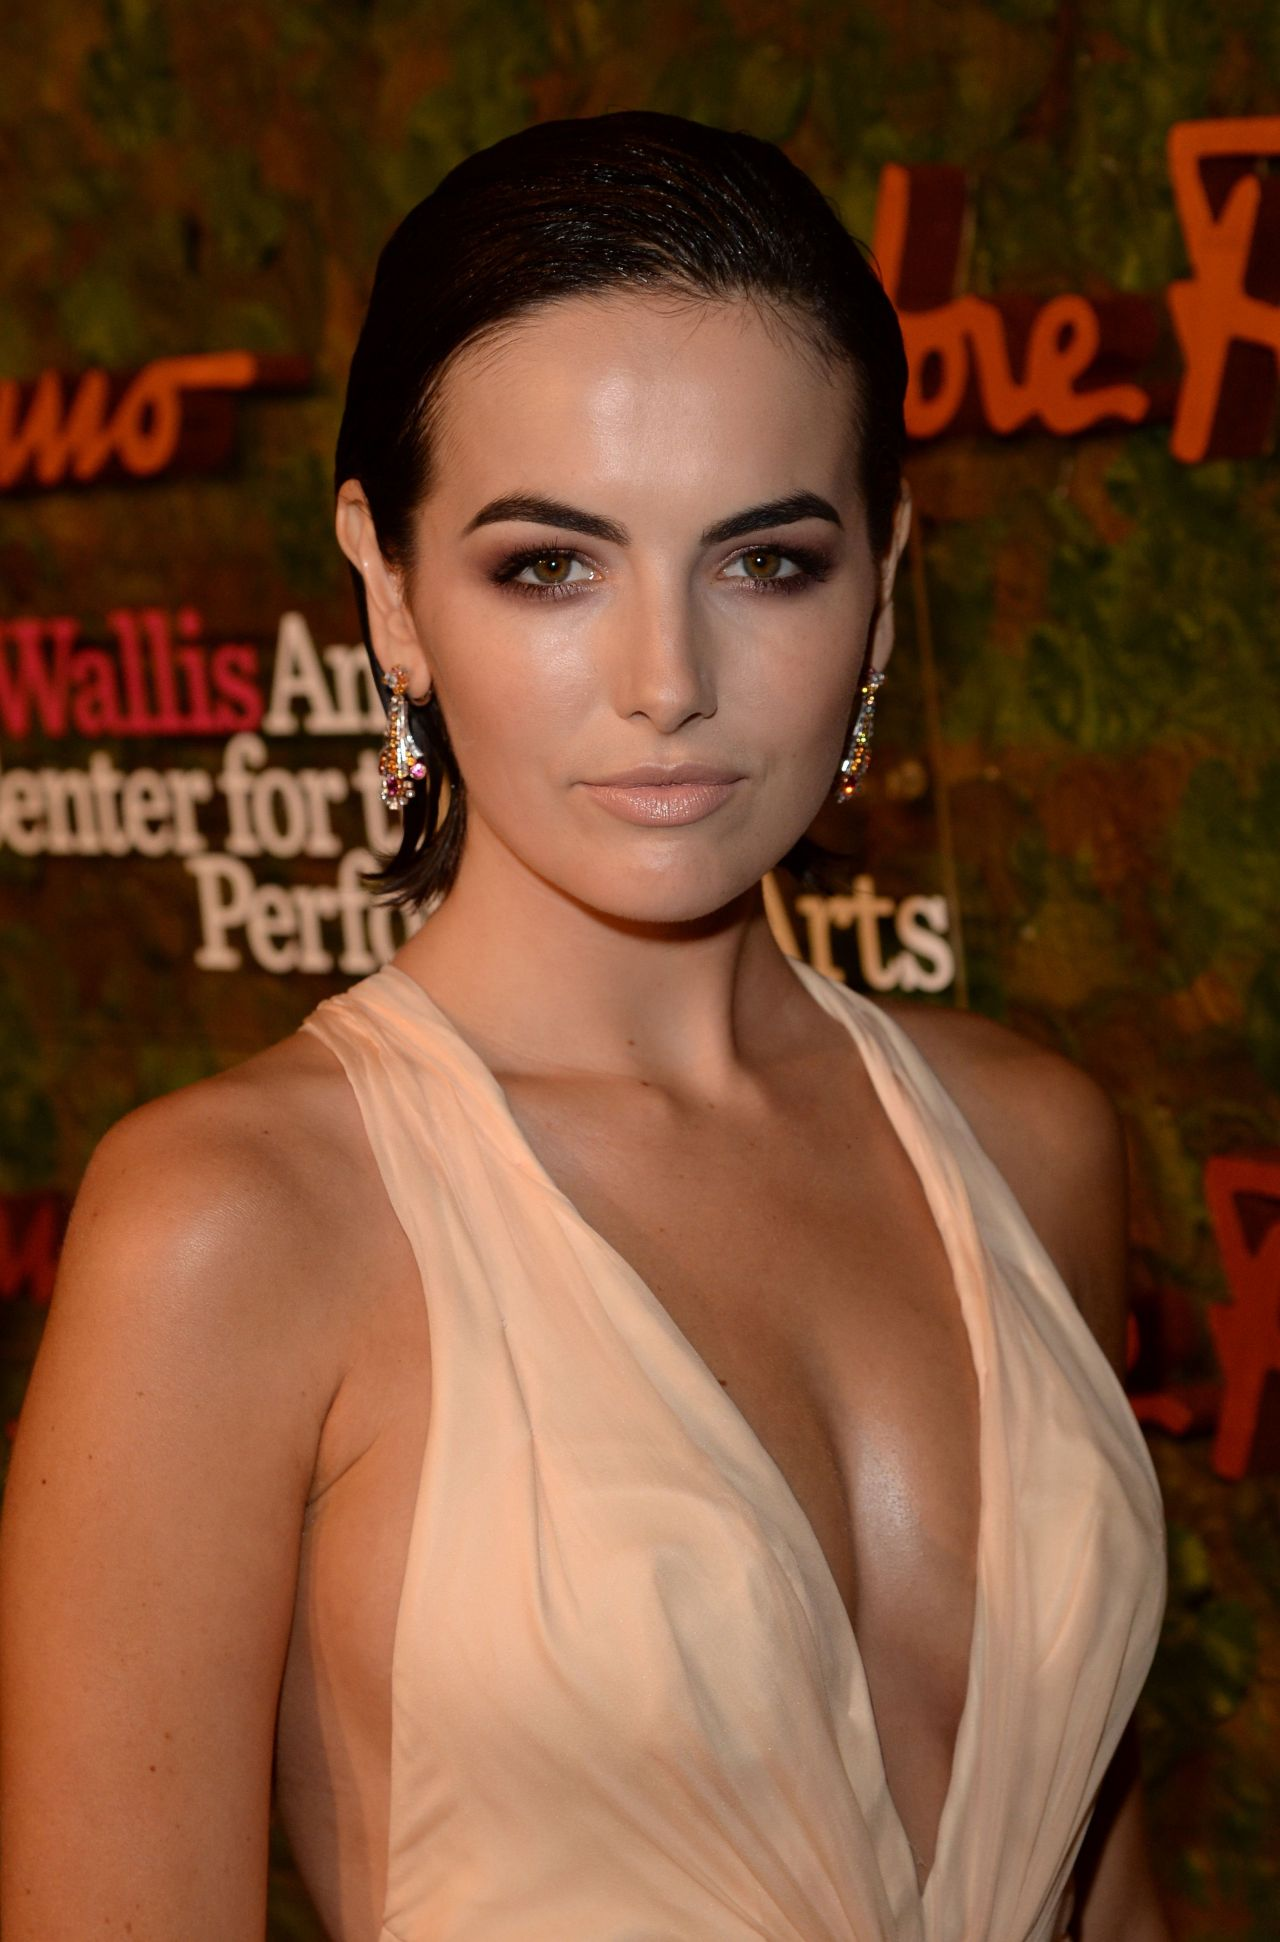 Camilla Belle at Wallis Annenberg Performing Arts Gala in